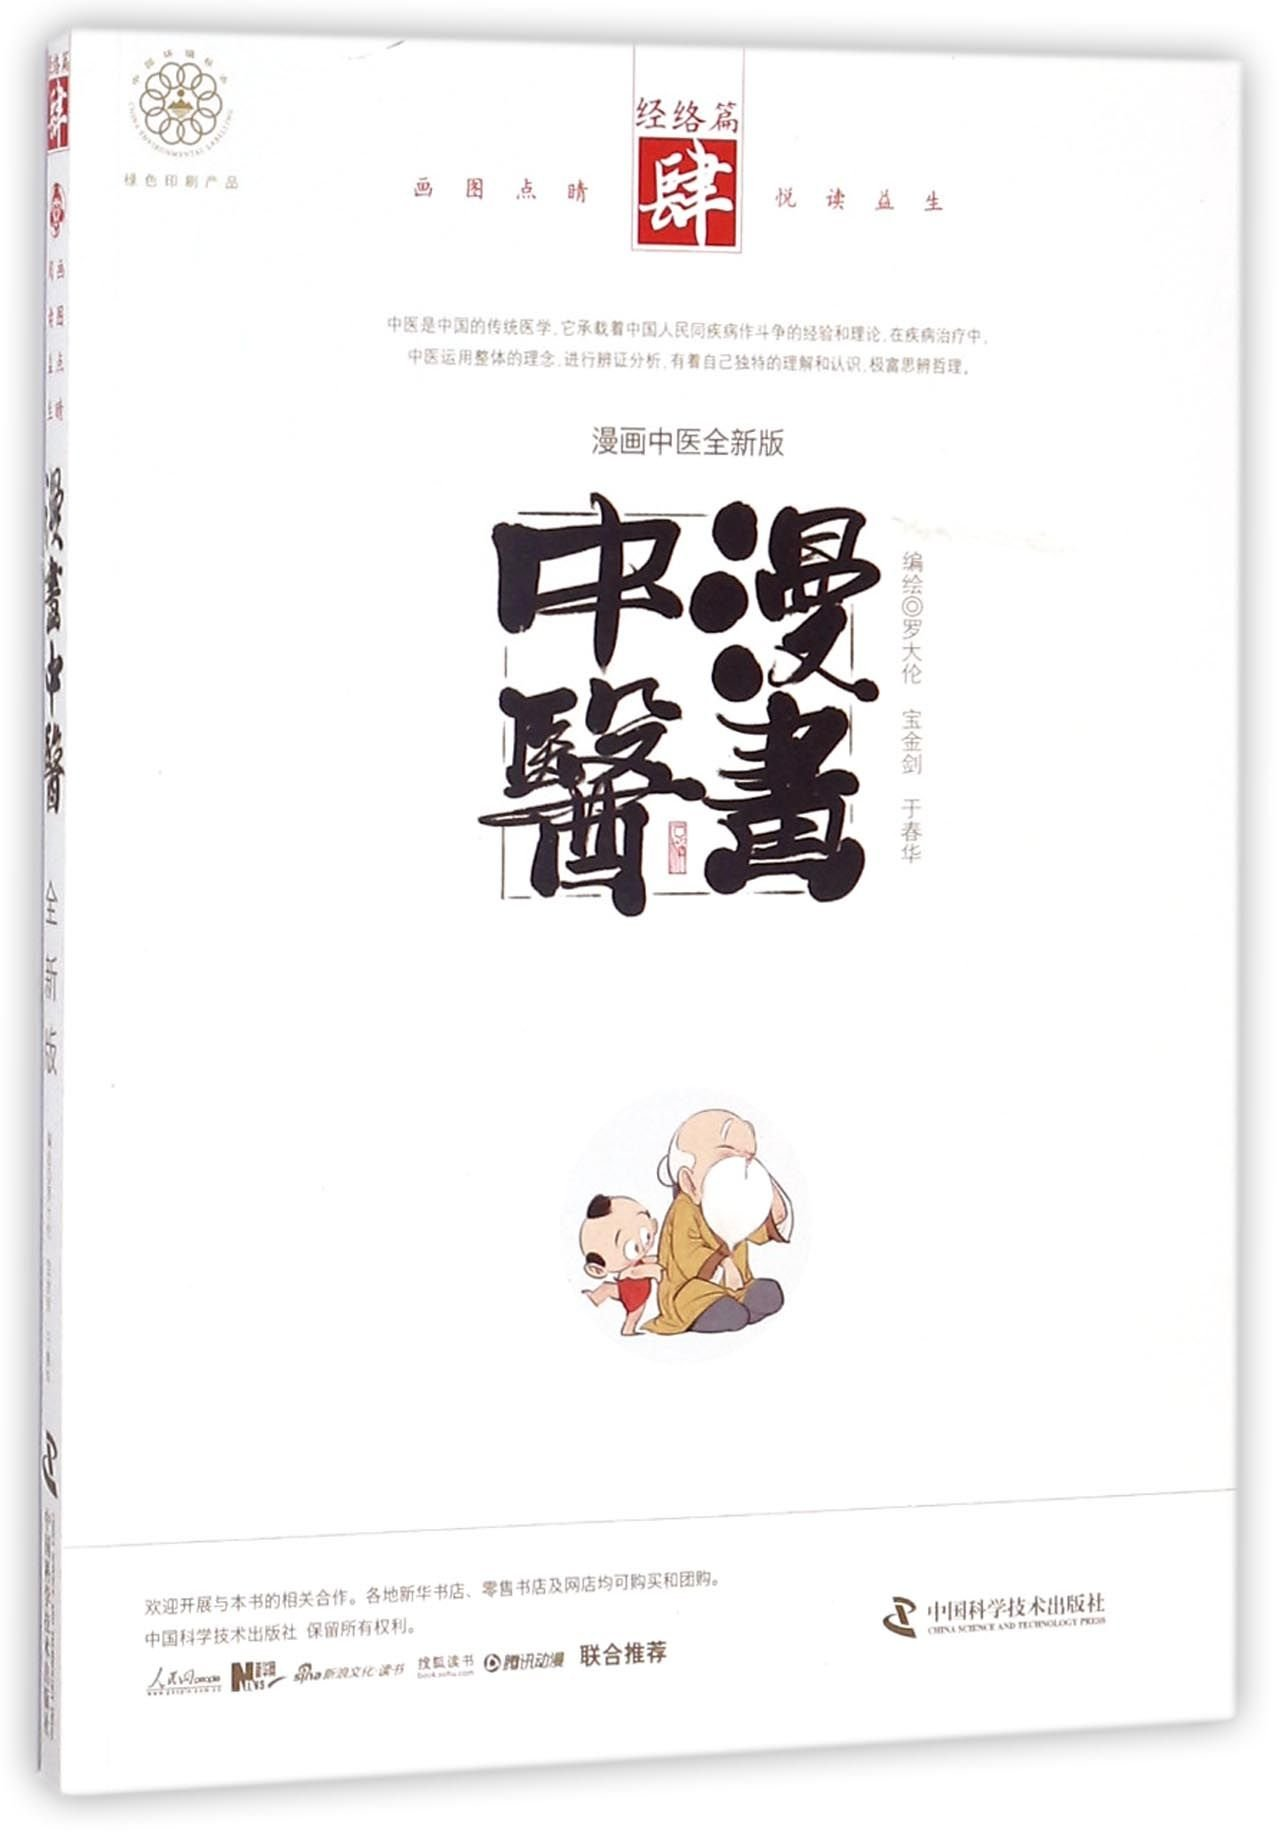 Traditional Chinese Medical in Cartoons (New Edition of Meridian and Channels in Cartoons) (Chinese Edition) pdf epub